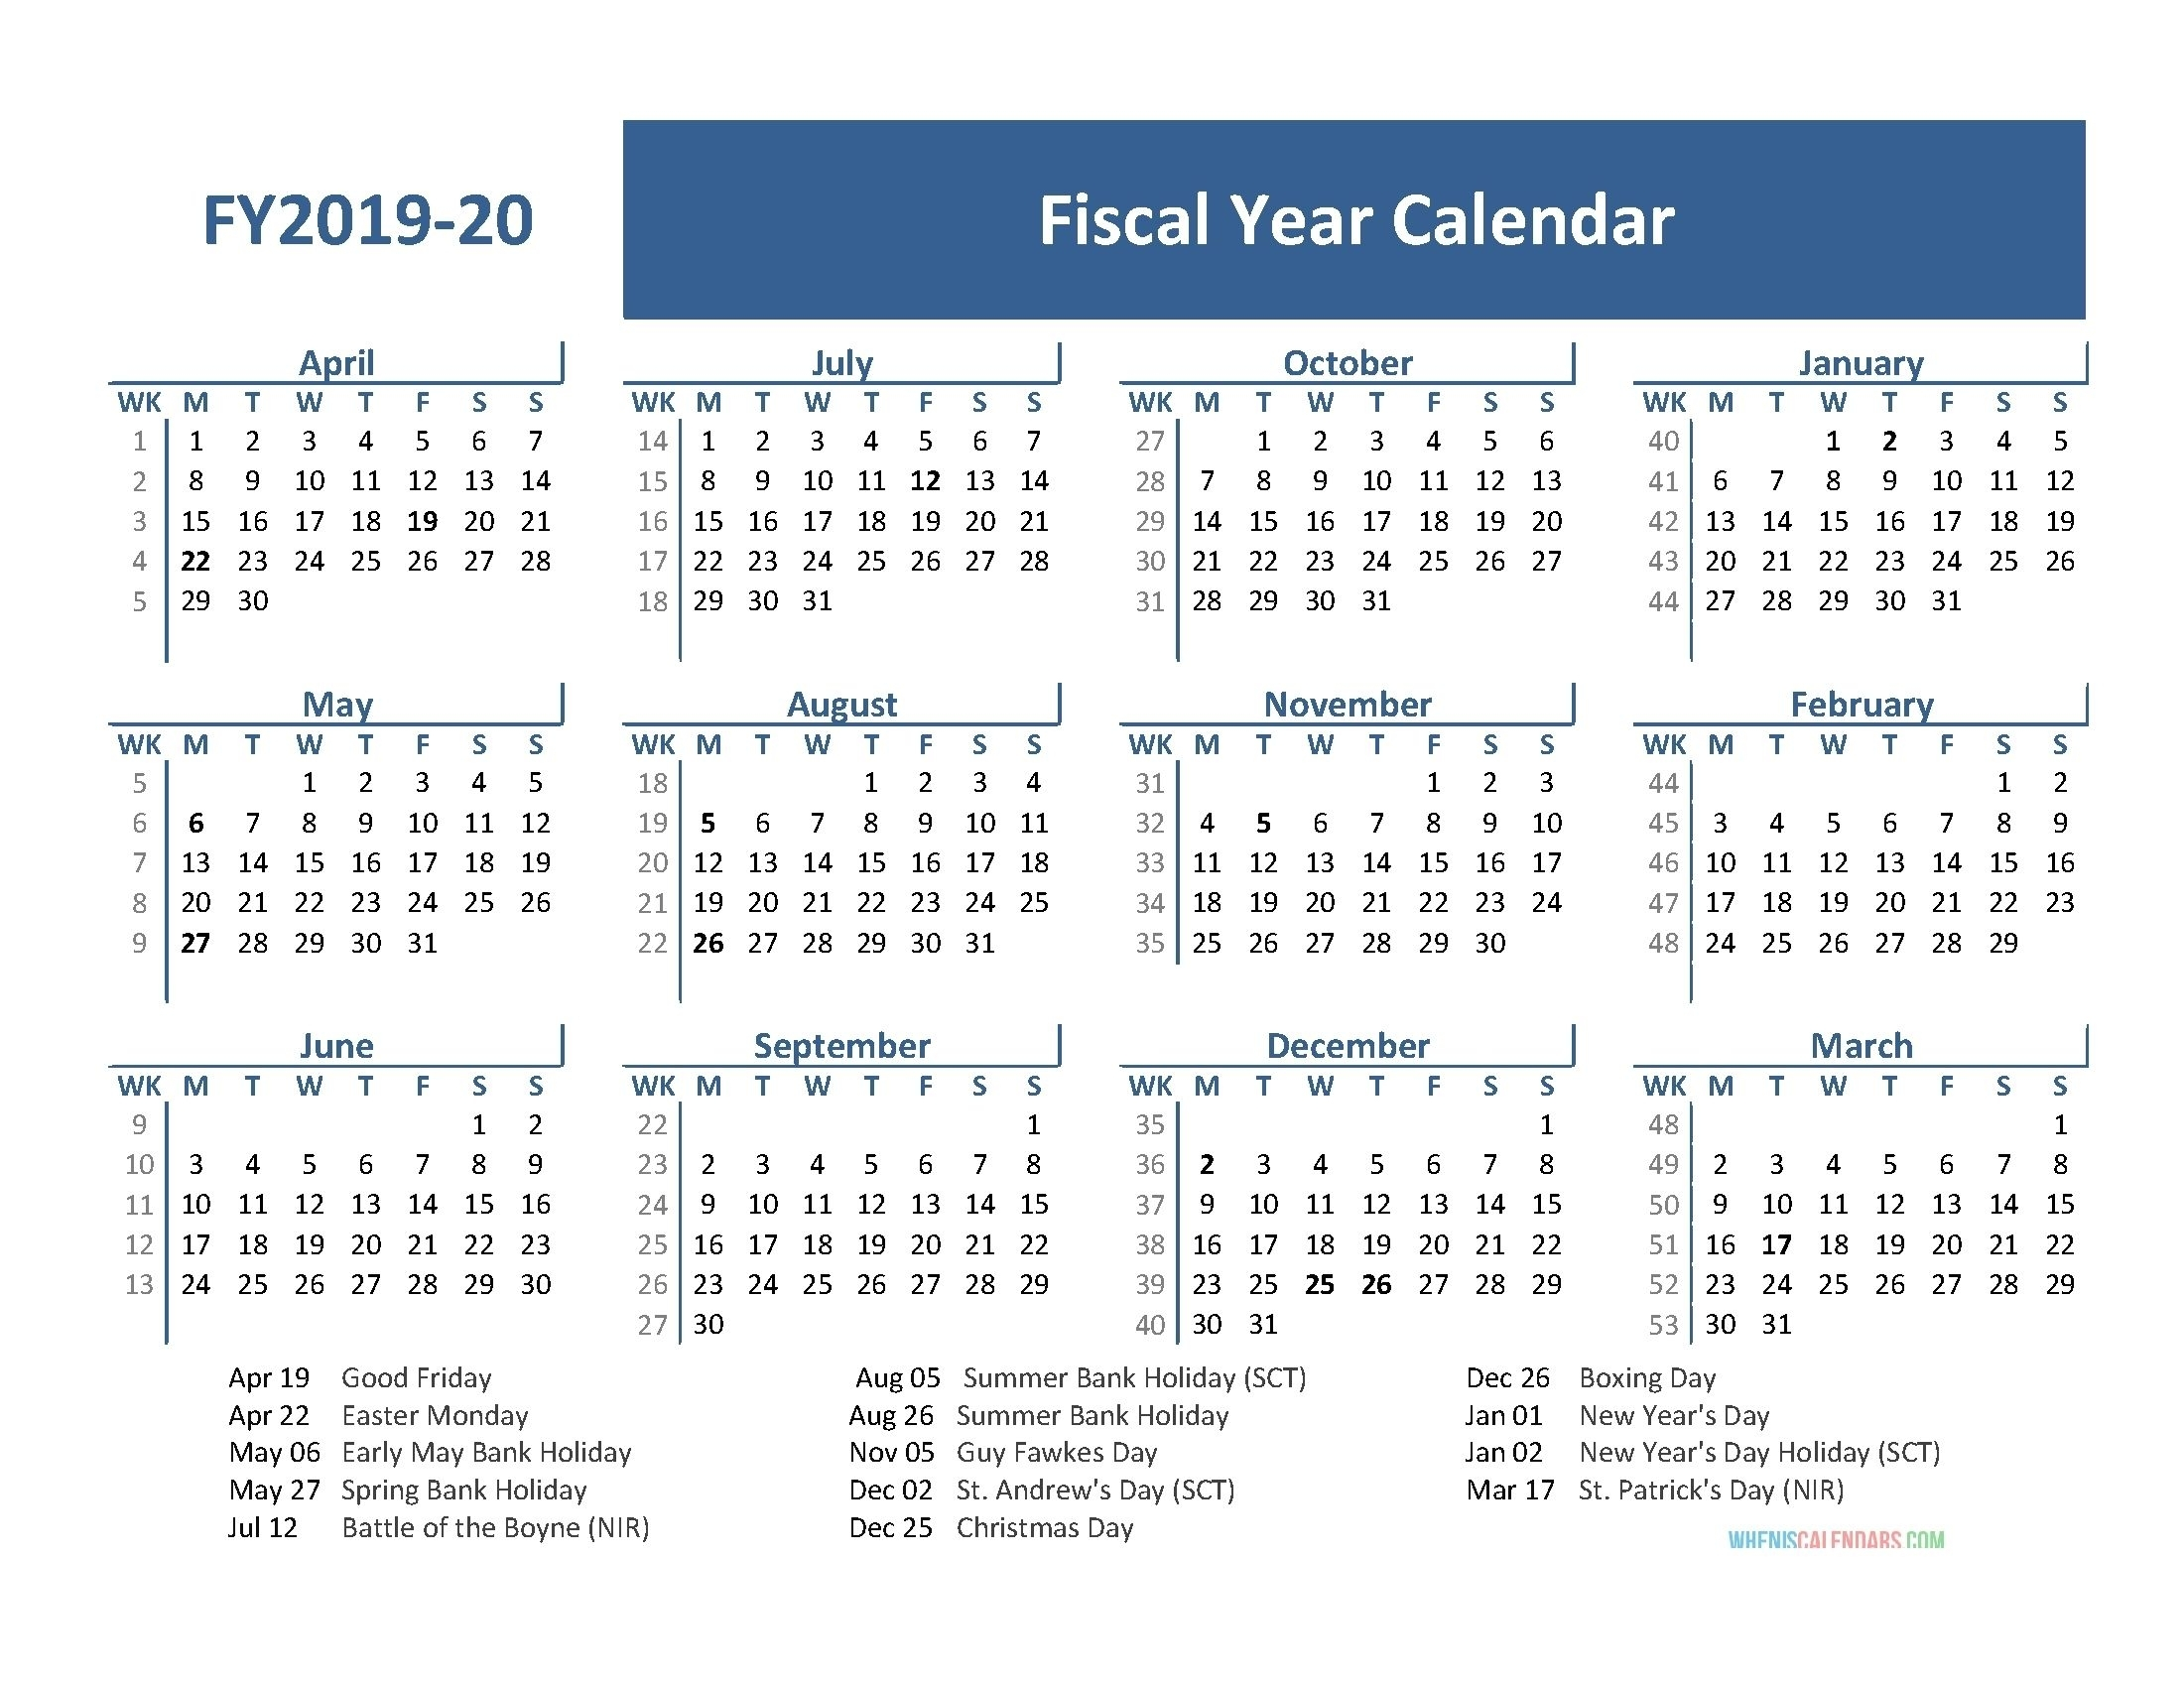 Financial Year Calendar 2019/20 Week Numbers Di 2020 inside Financial Calendare With Weeks Numbers